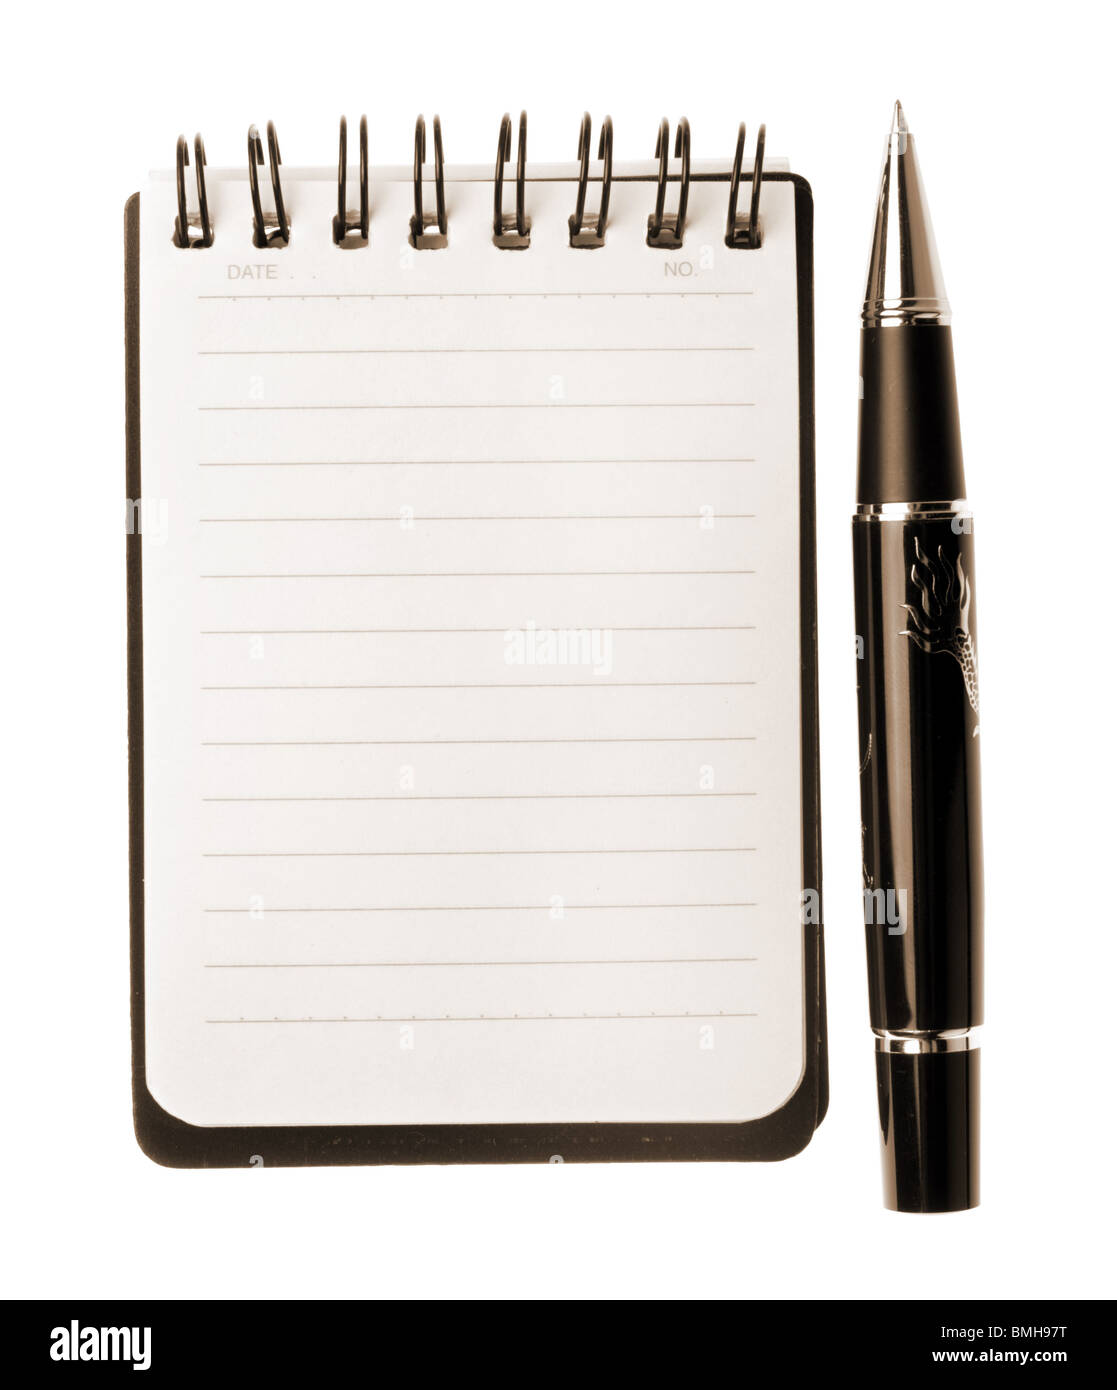 Notebook and pen isolated on white background, sepia toned - Stock Image